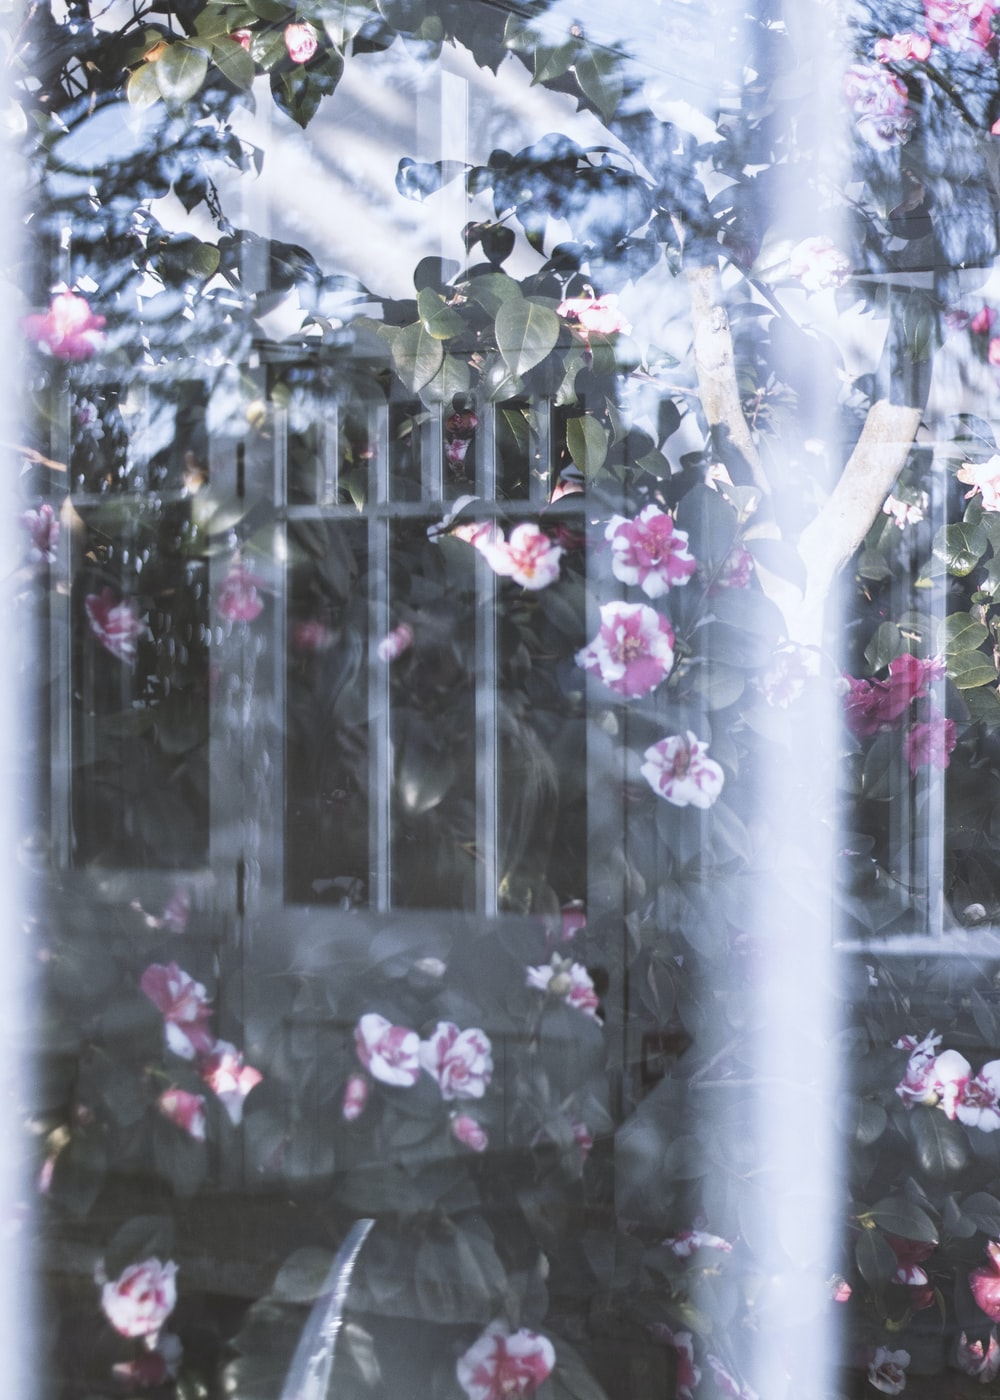 white-and-pink camellia flowers on fence